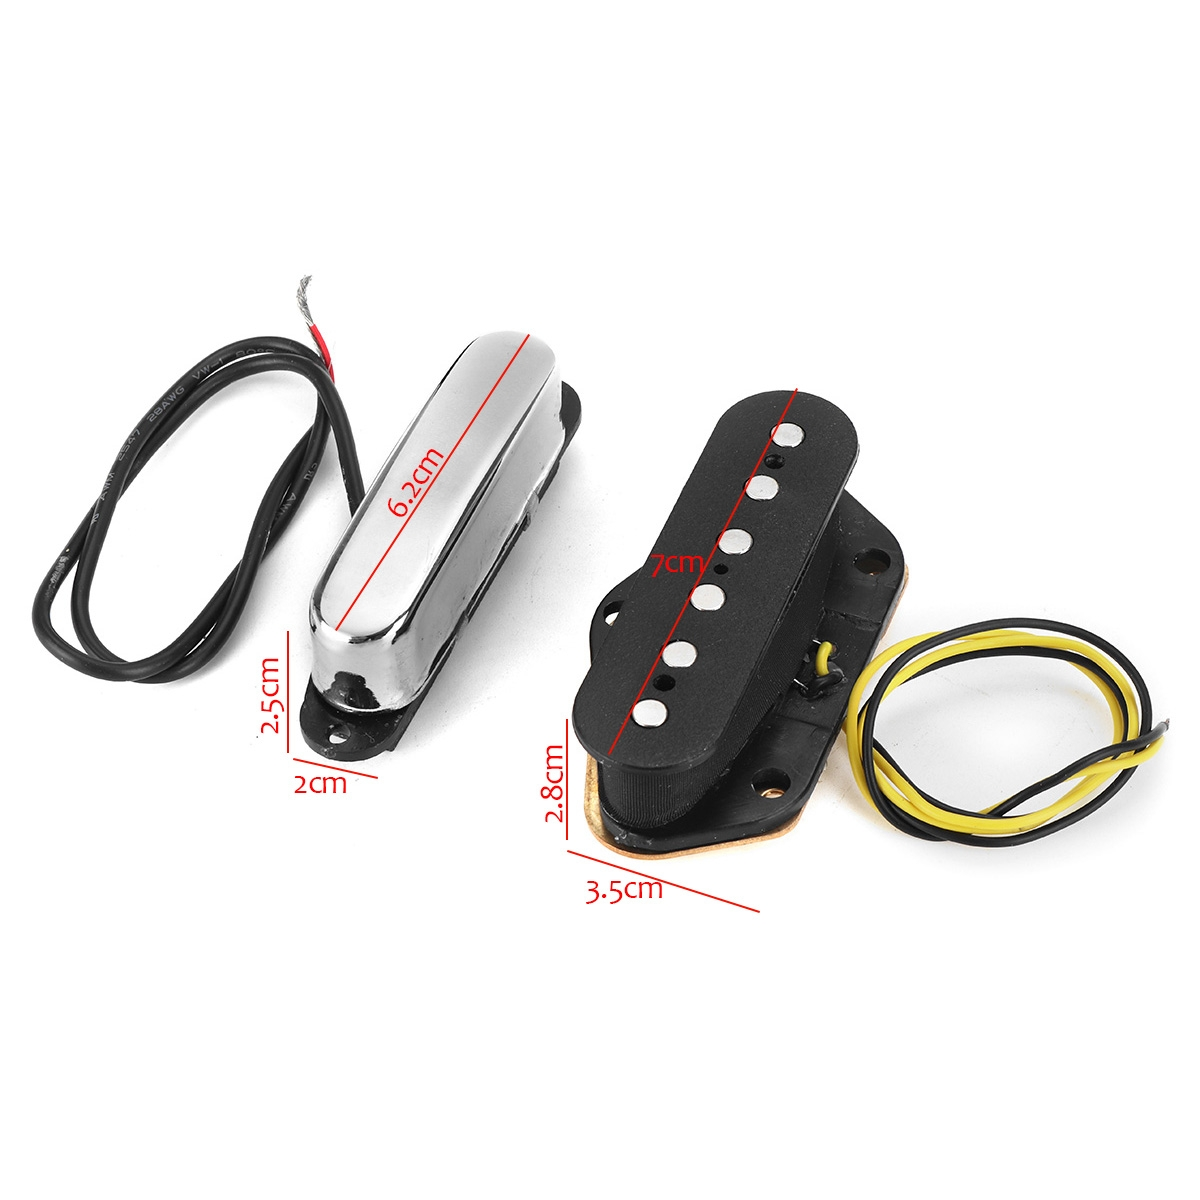 Electric Guitar Pickup Alnico 5 Single Coil Musical Instrument Accessories